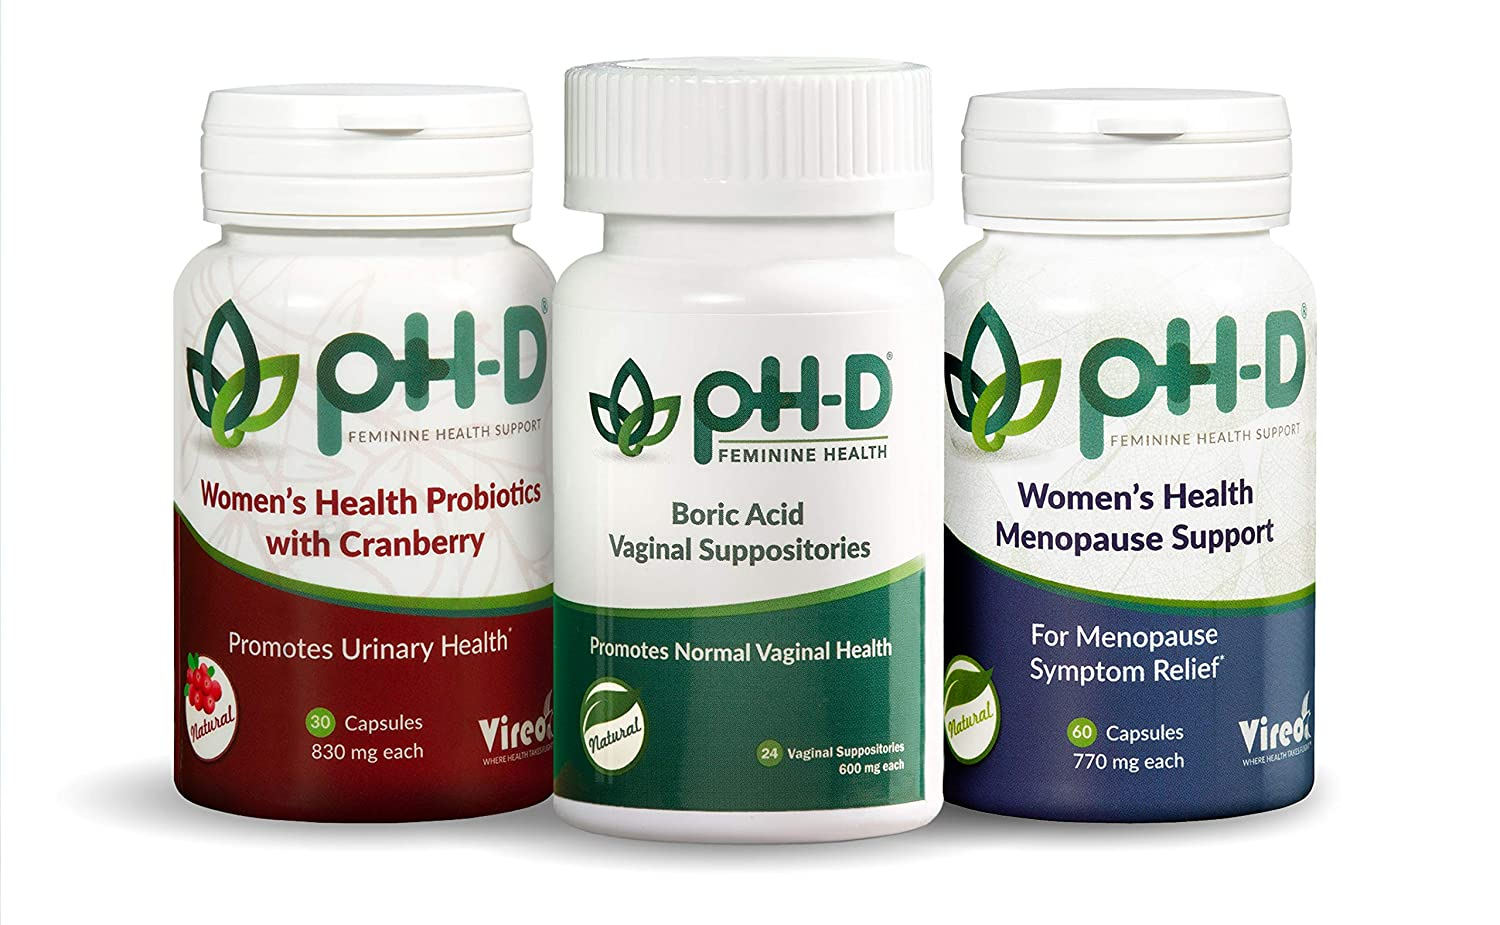 pH-D Feminine Health Support by Vireo, Boric Acid Vaginal Suppositories,  Bottle of 24 (600mg)